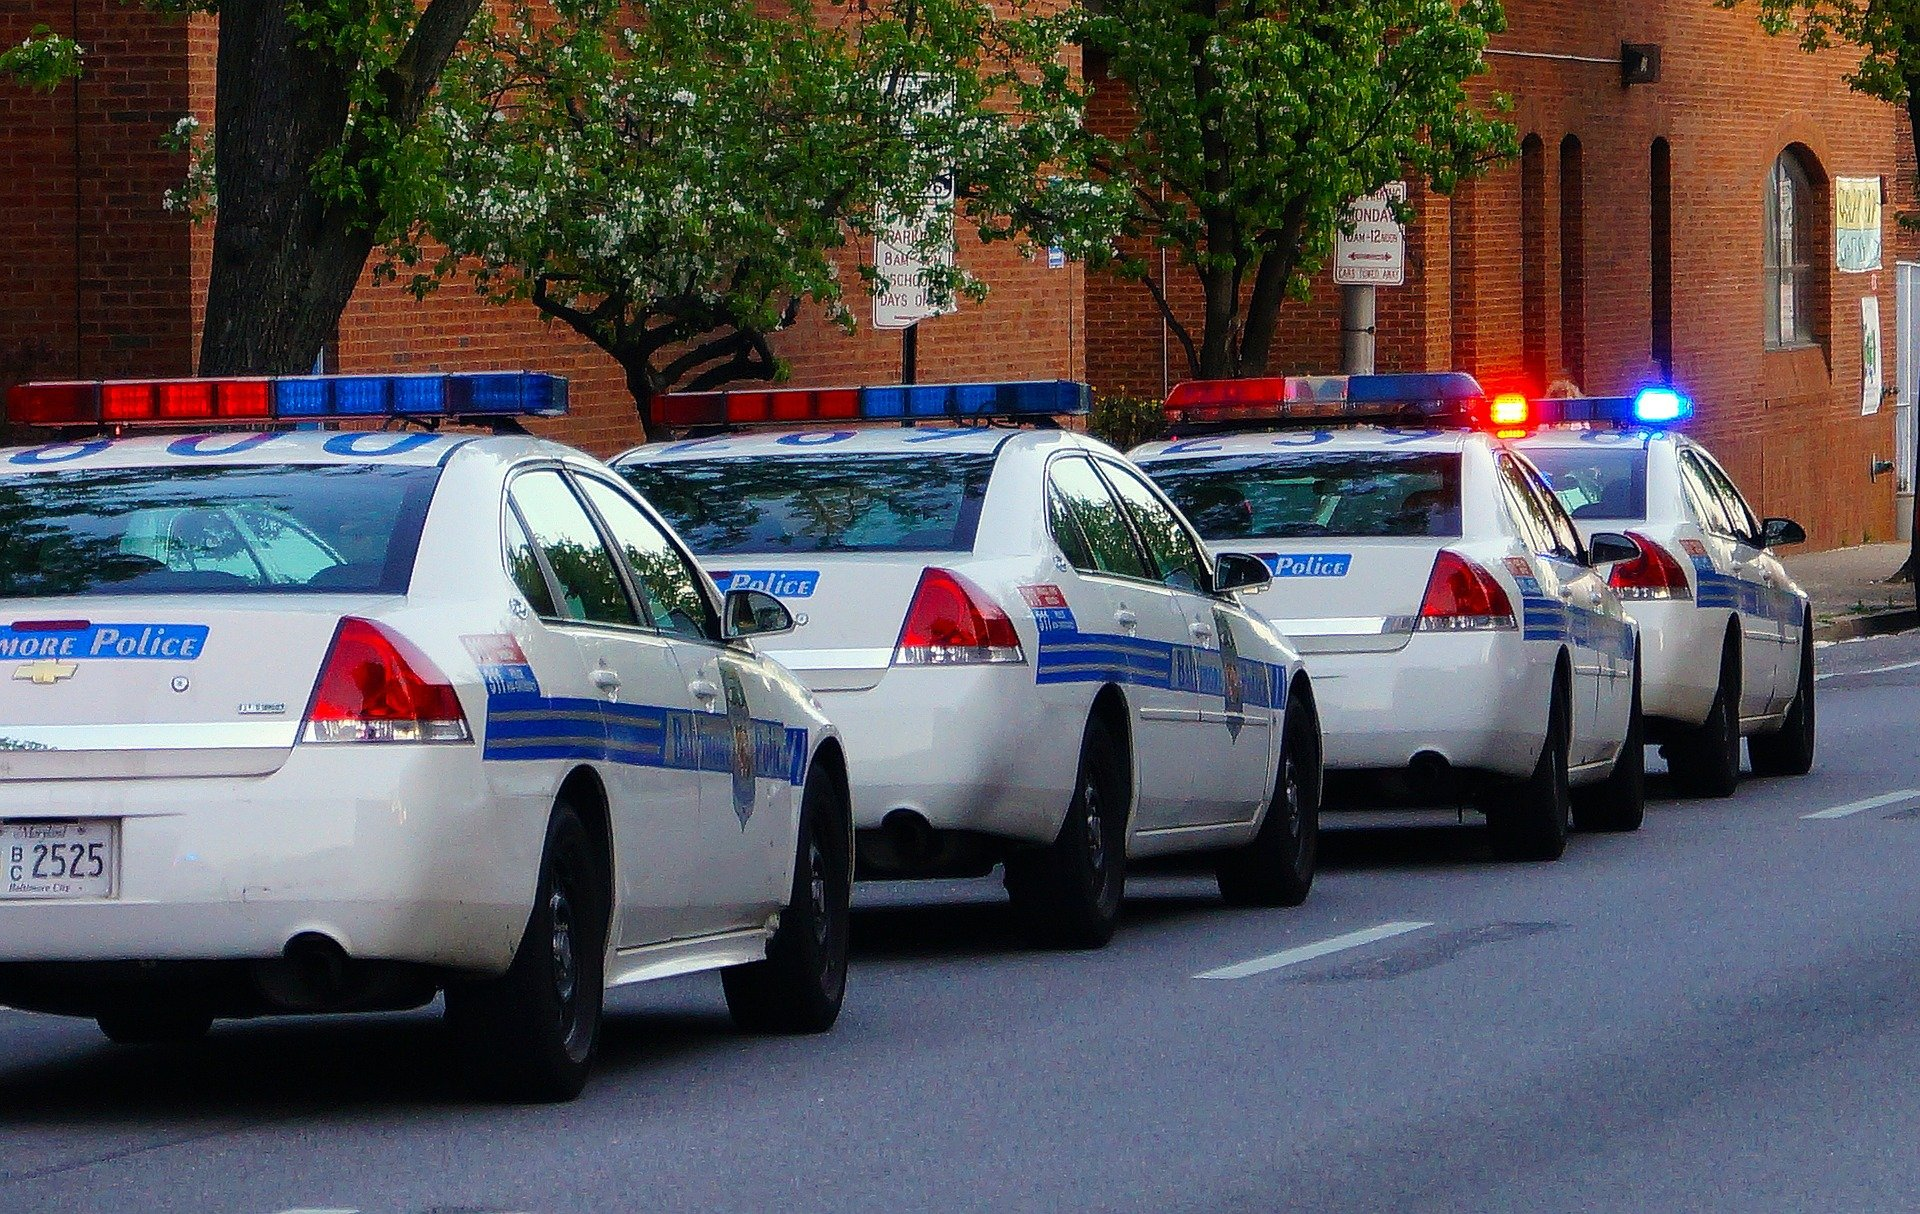 Police vehicles on the street in Baltimore | Source: Pixabay